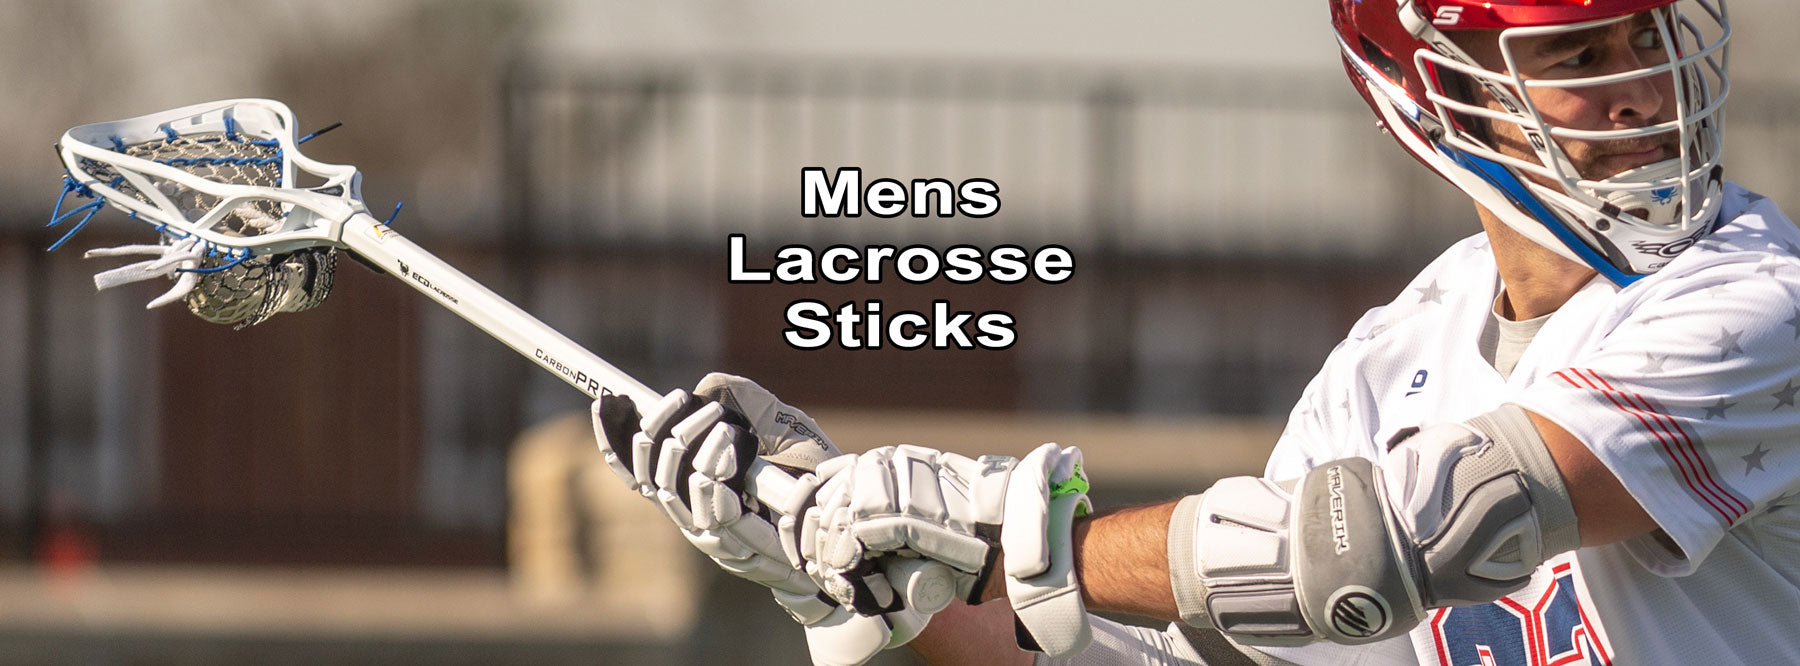 Mens Lacrosse Sticks from Lacrosse Fanatic